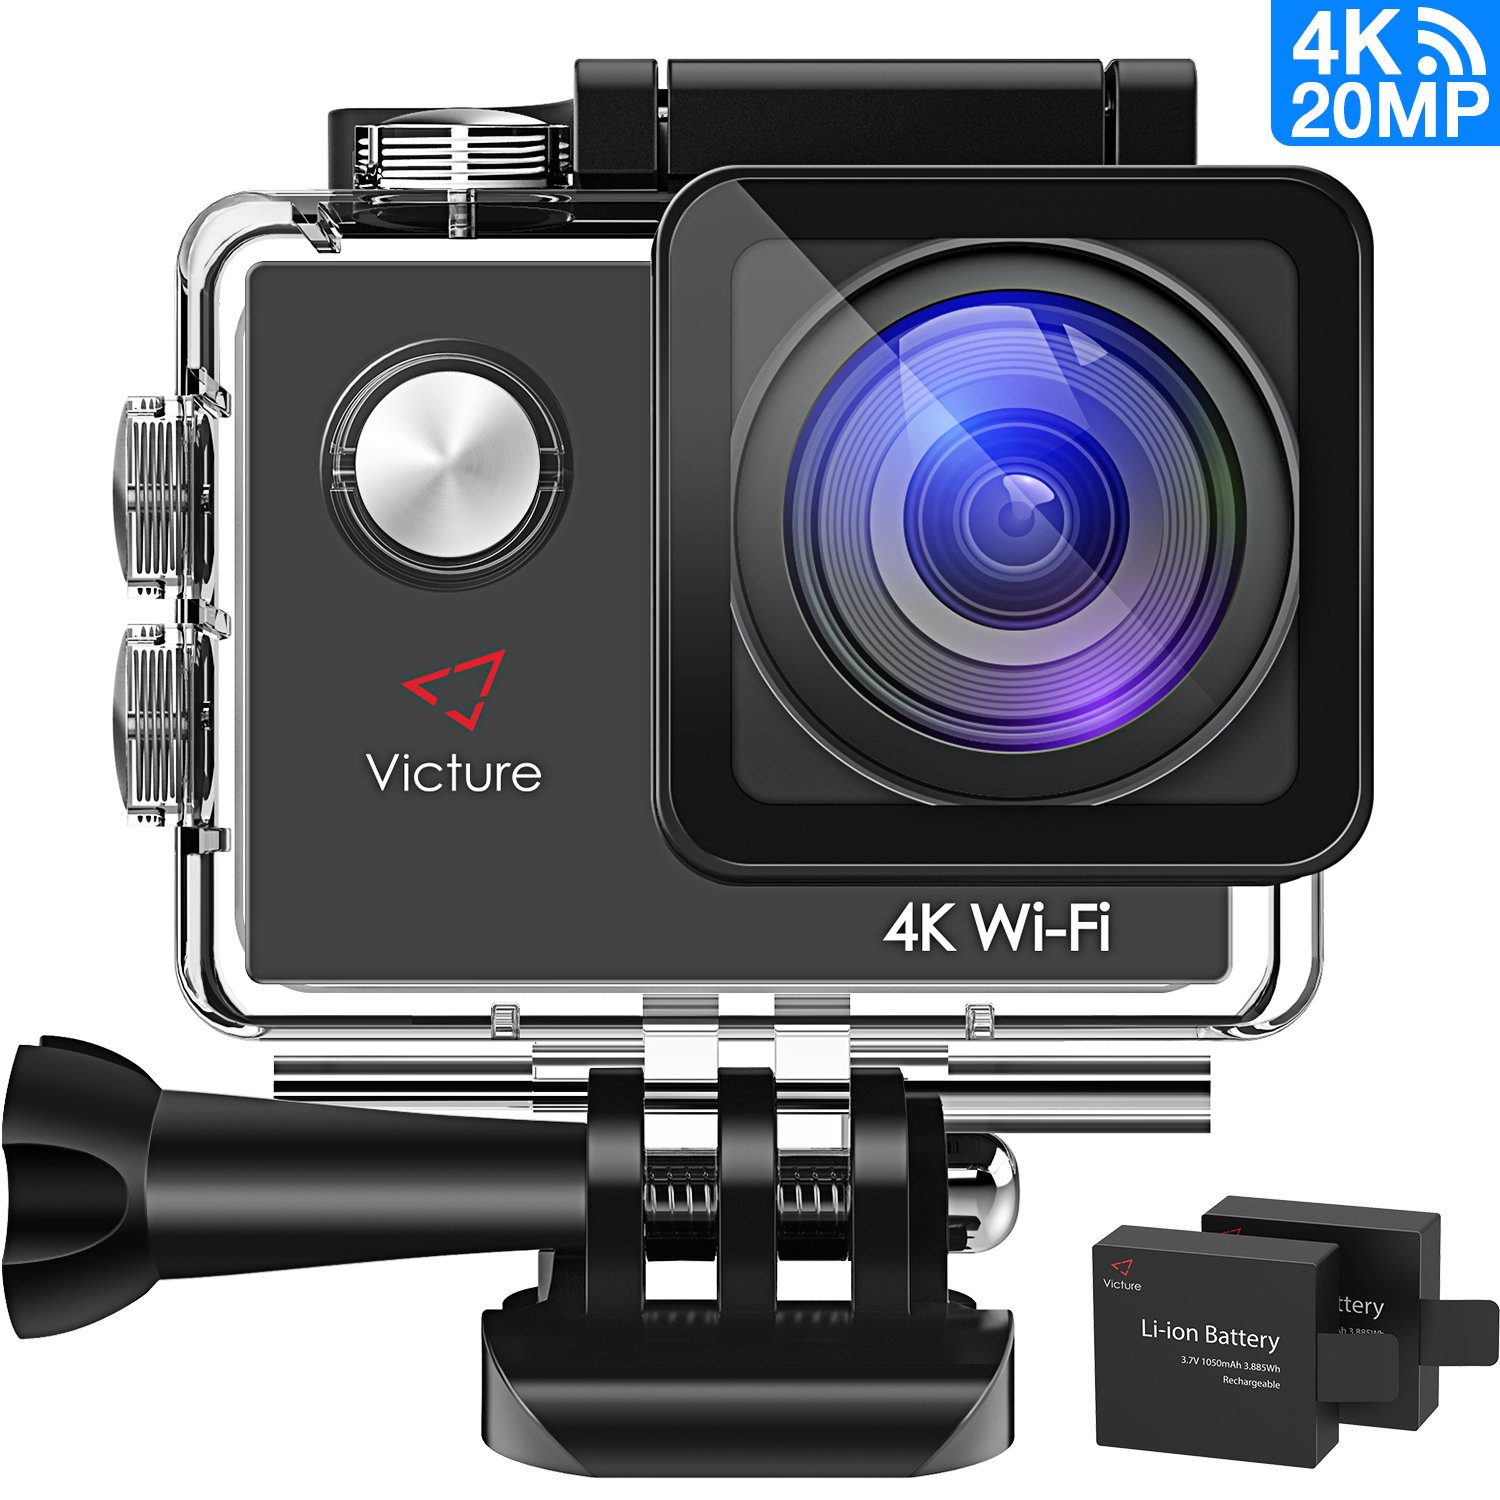 Action Camera 4K WiFi Underwater Waterproof Sports Cam Underwater Diving Camera 170° Wide Angel 2 Inch LCD Display with 2 Pcs Rechargeable Batteries and Accessories Kits Victure